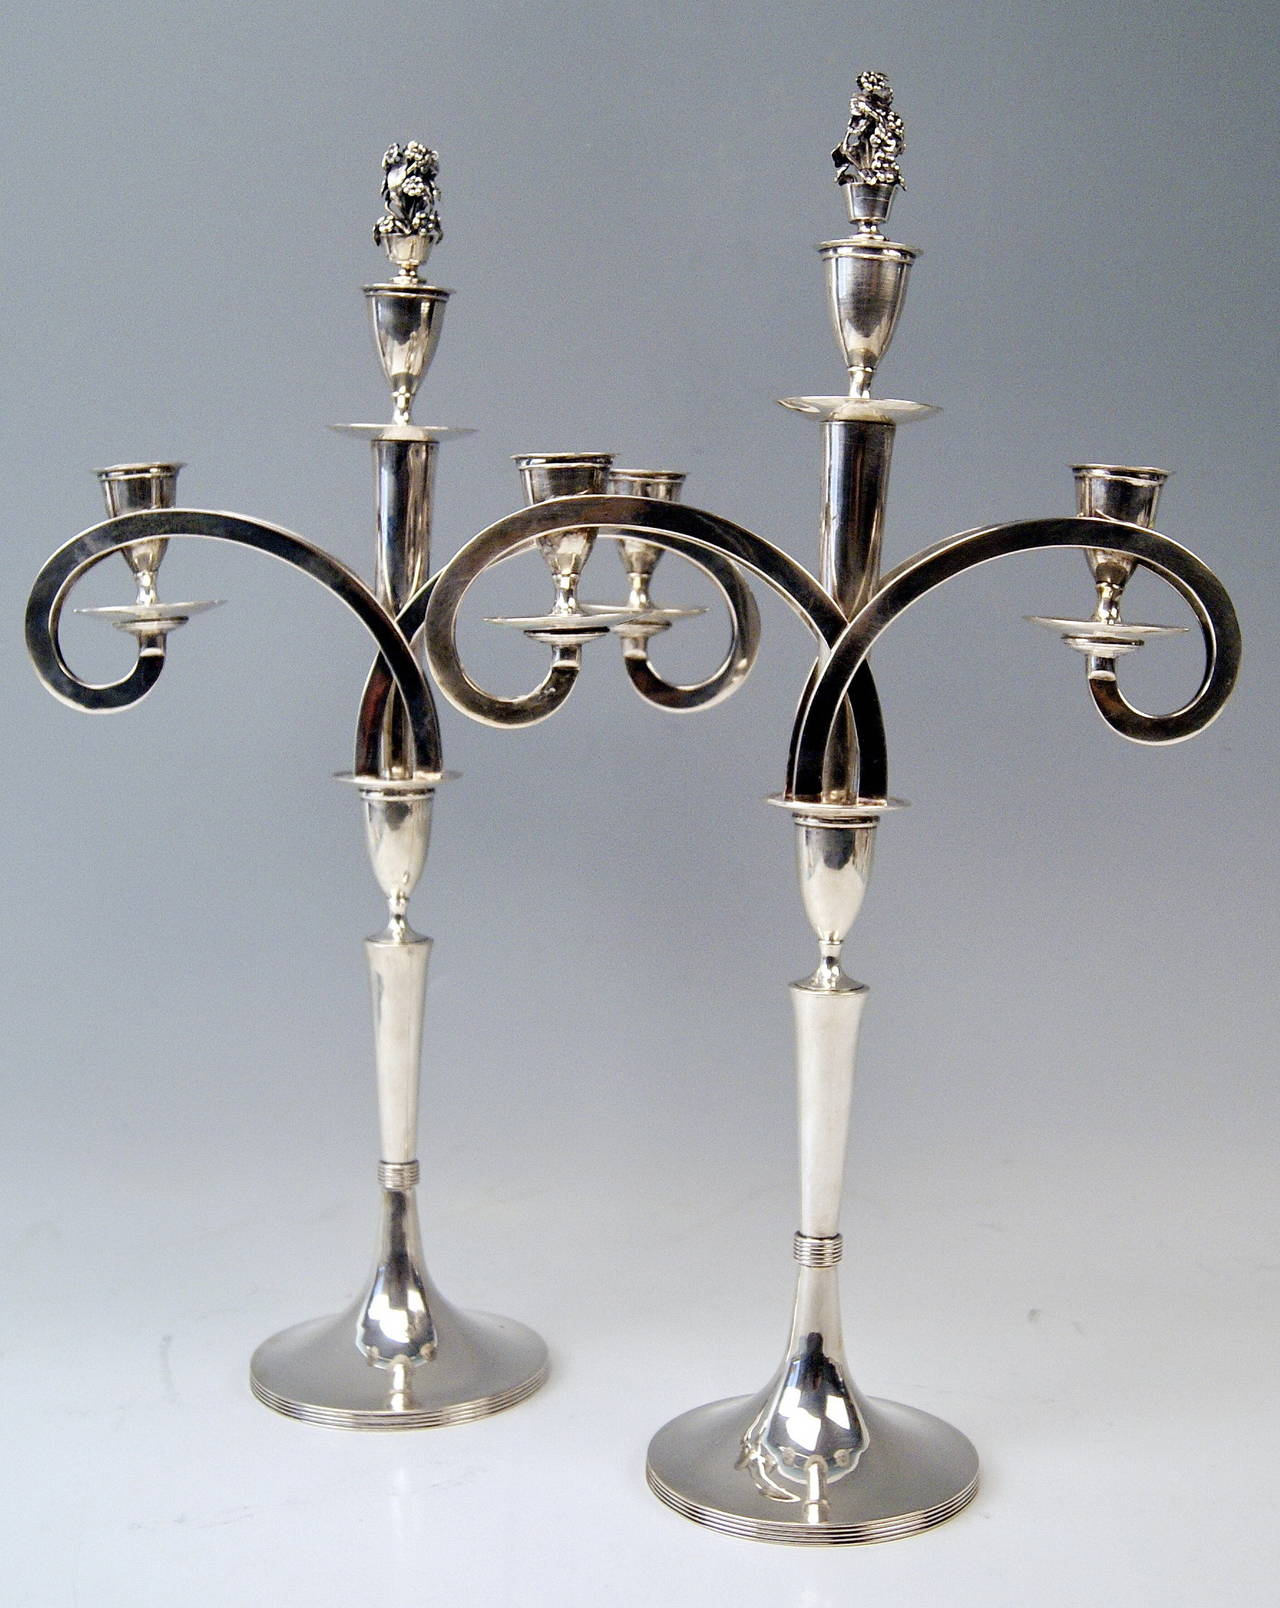 Gorgeous Viennese silver pair of tall candlesticks of finest manufacturing quality as well as of most elegant appearance.